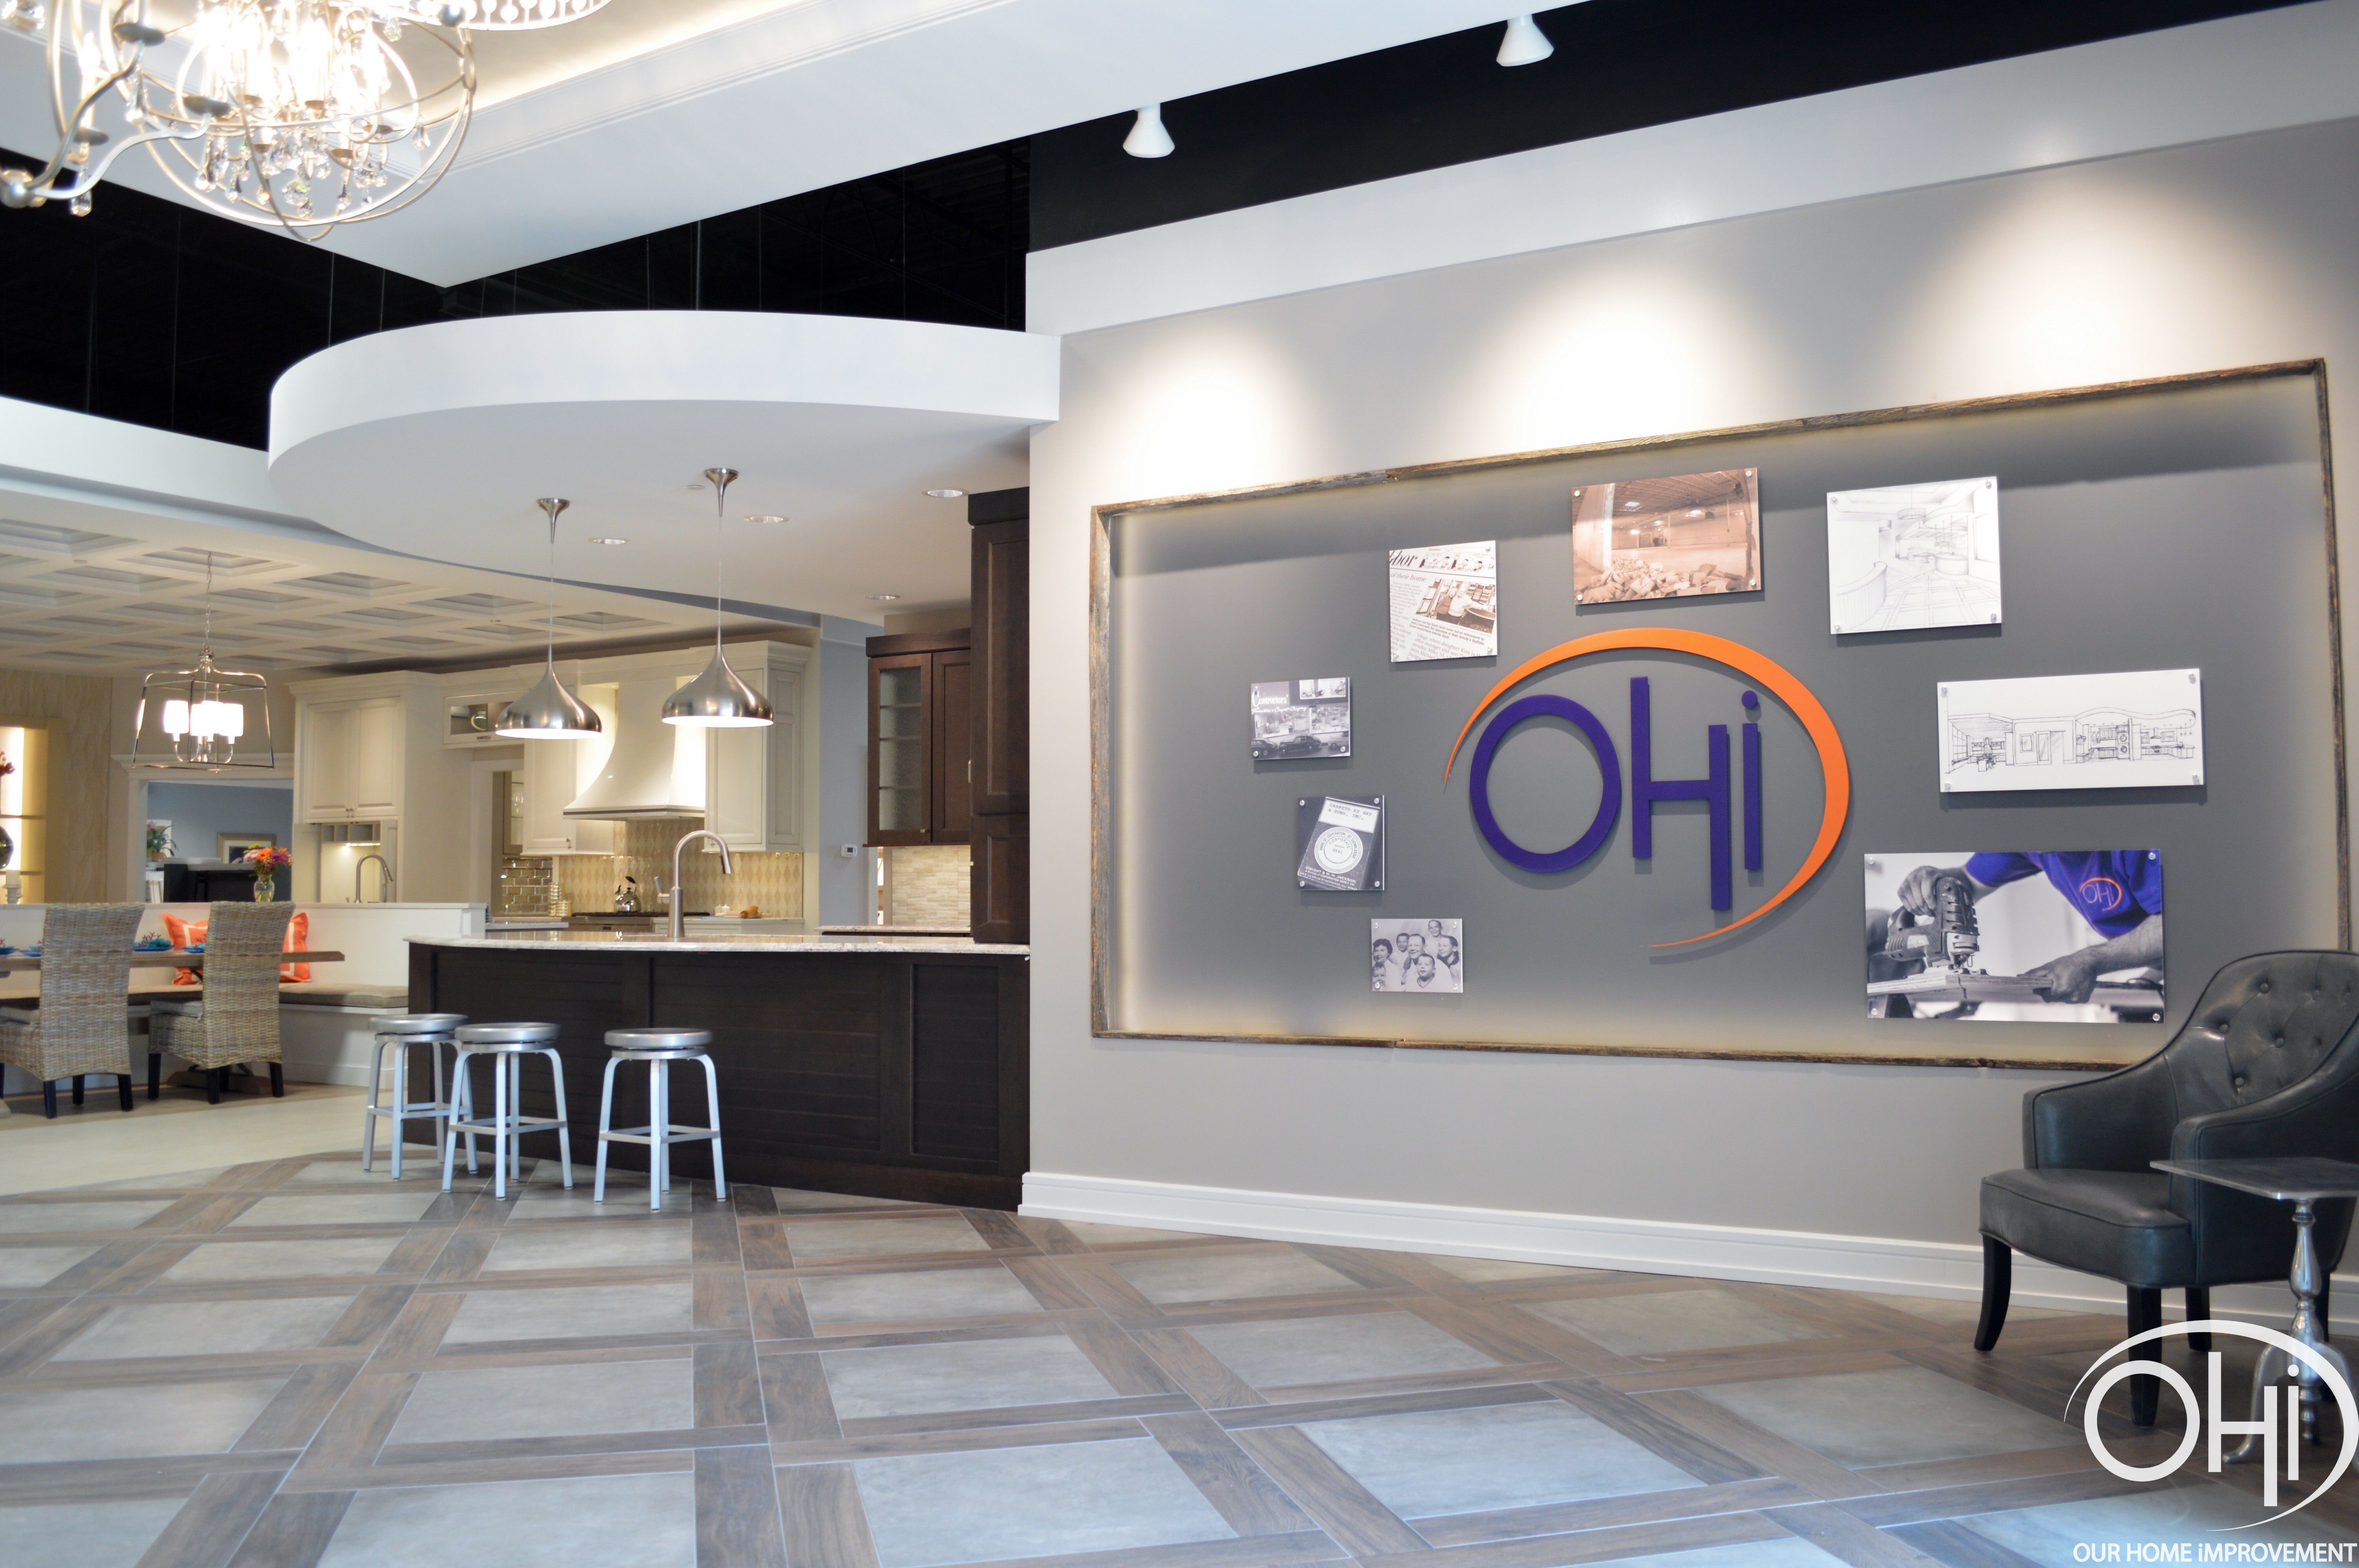 Ohi S Showroom In Elk Grove Village Il Contactohi Chicagoland Kitchen Bath Floors Additions Remodel Homedecor Remodeling F Home House Design Design